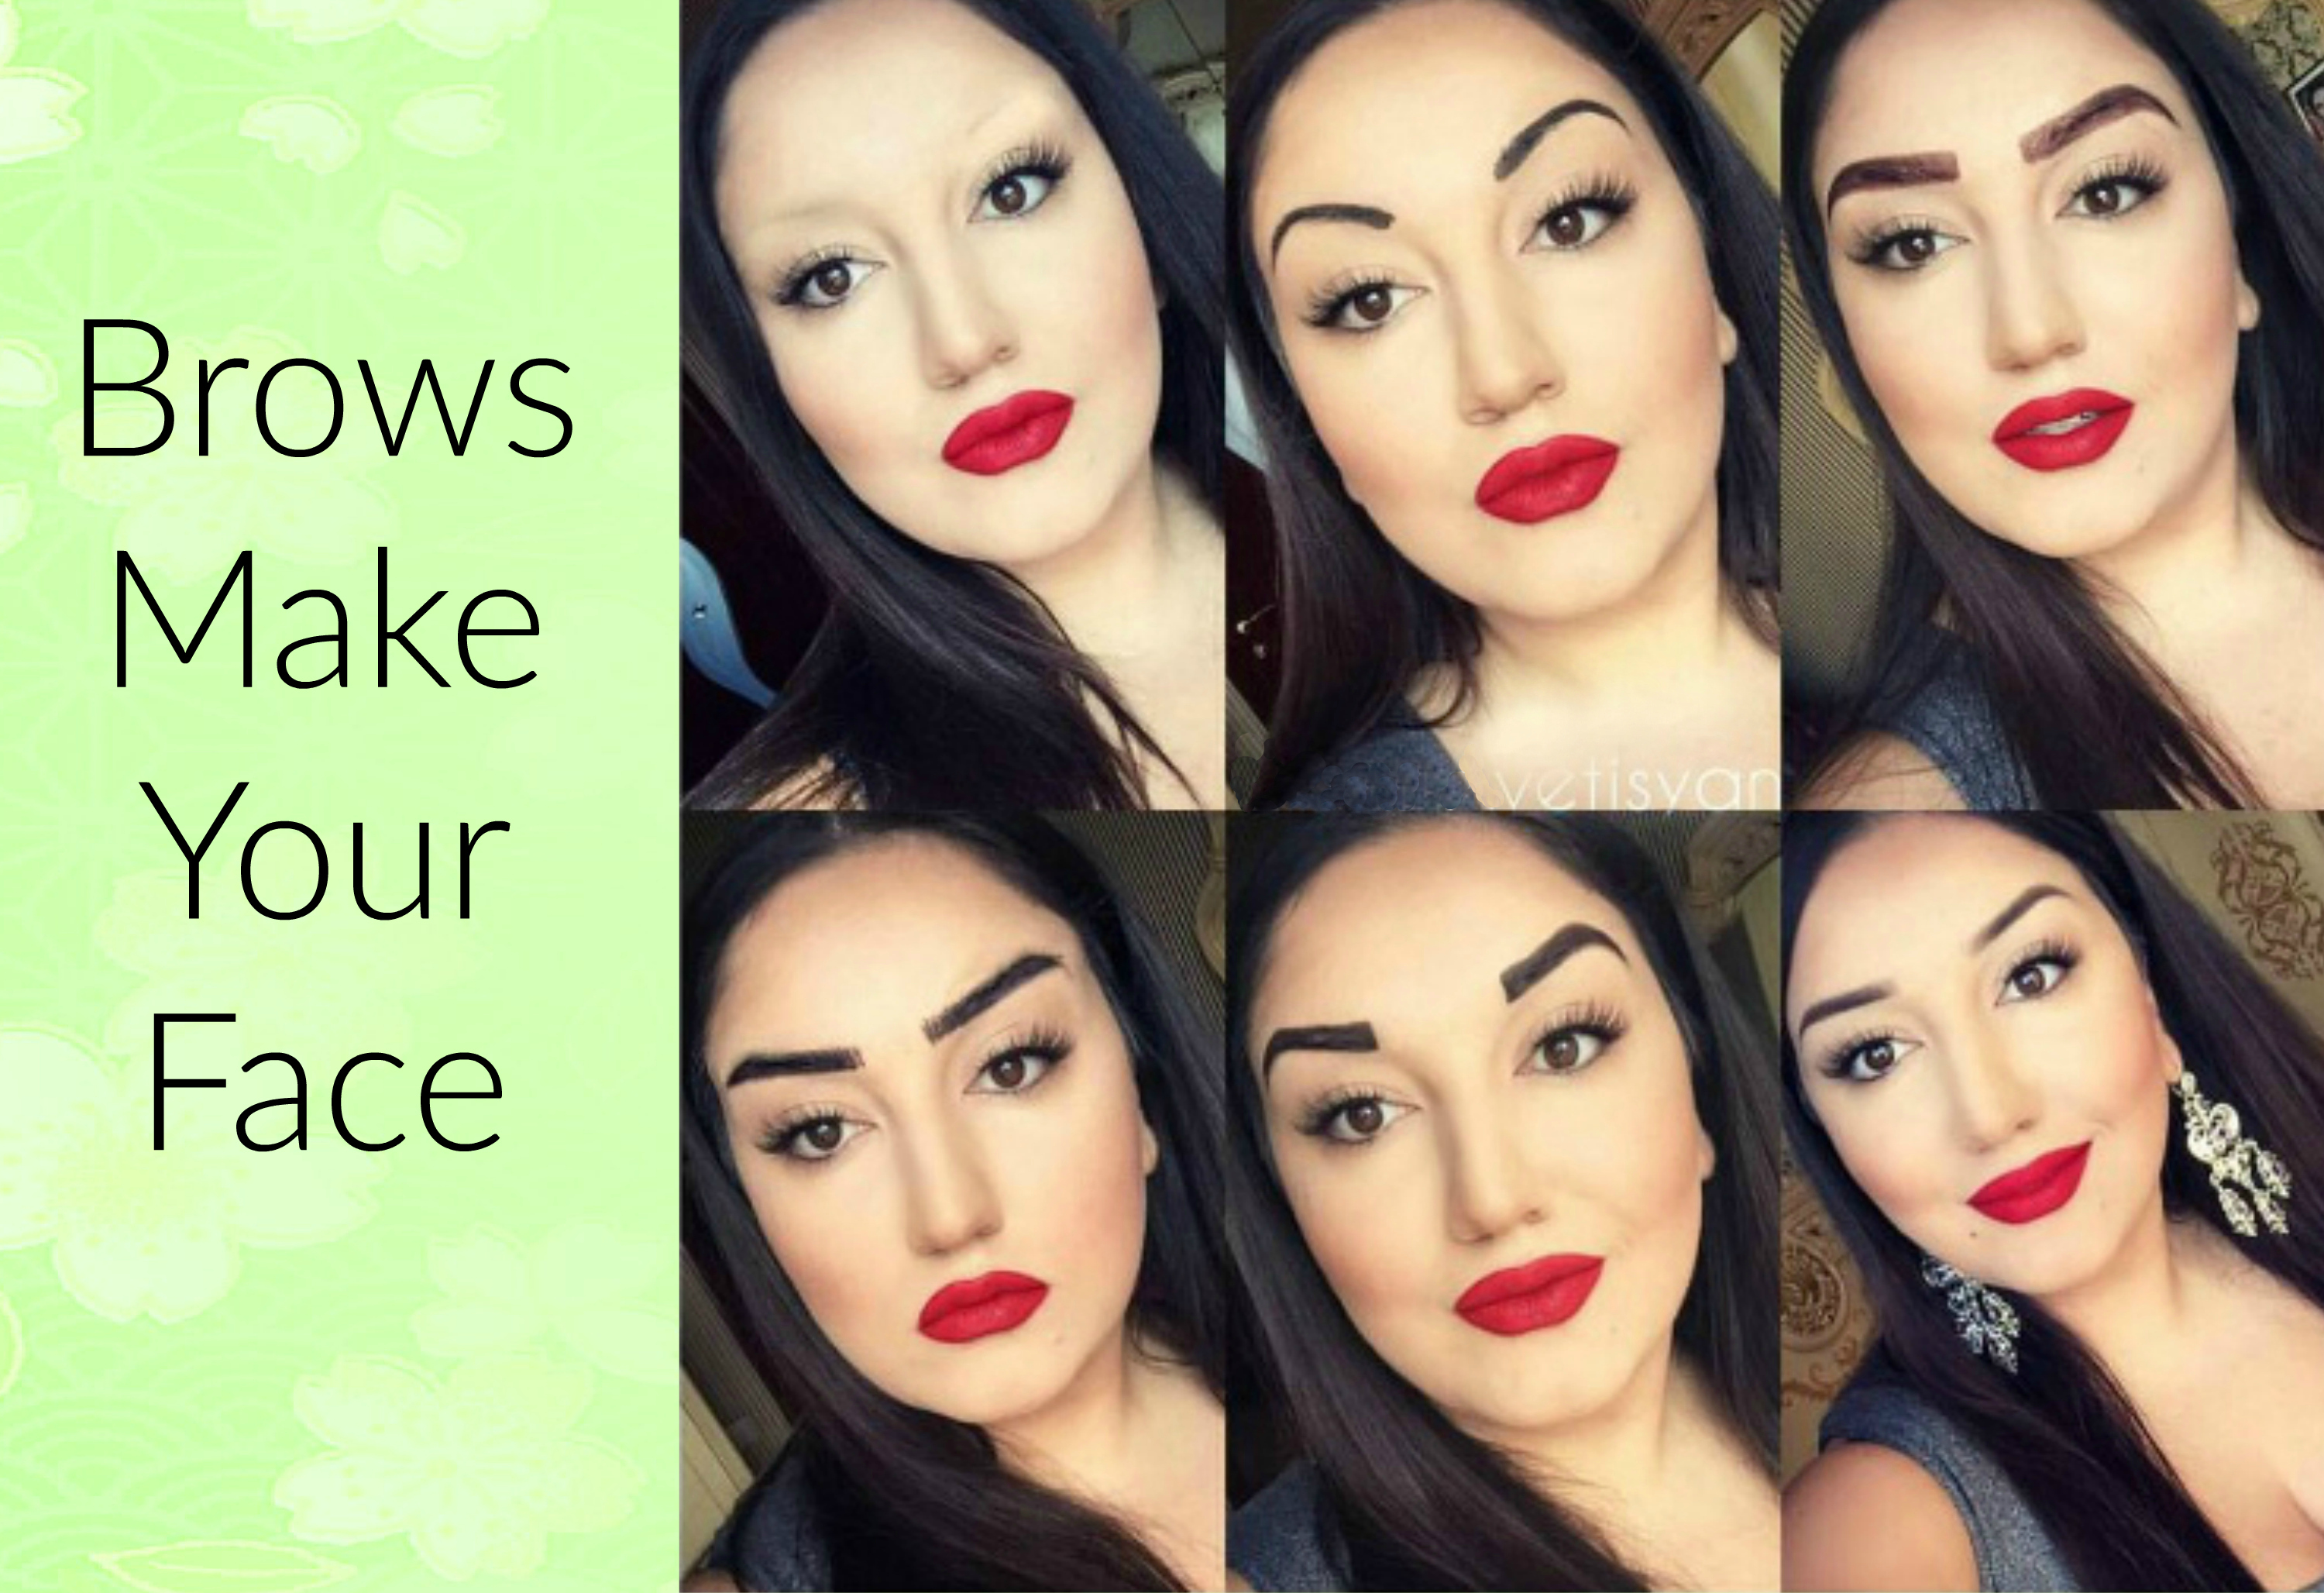 EastFallsLocal brows make your face collage txt